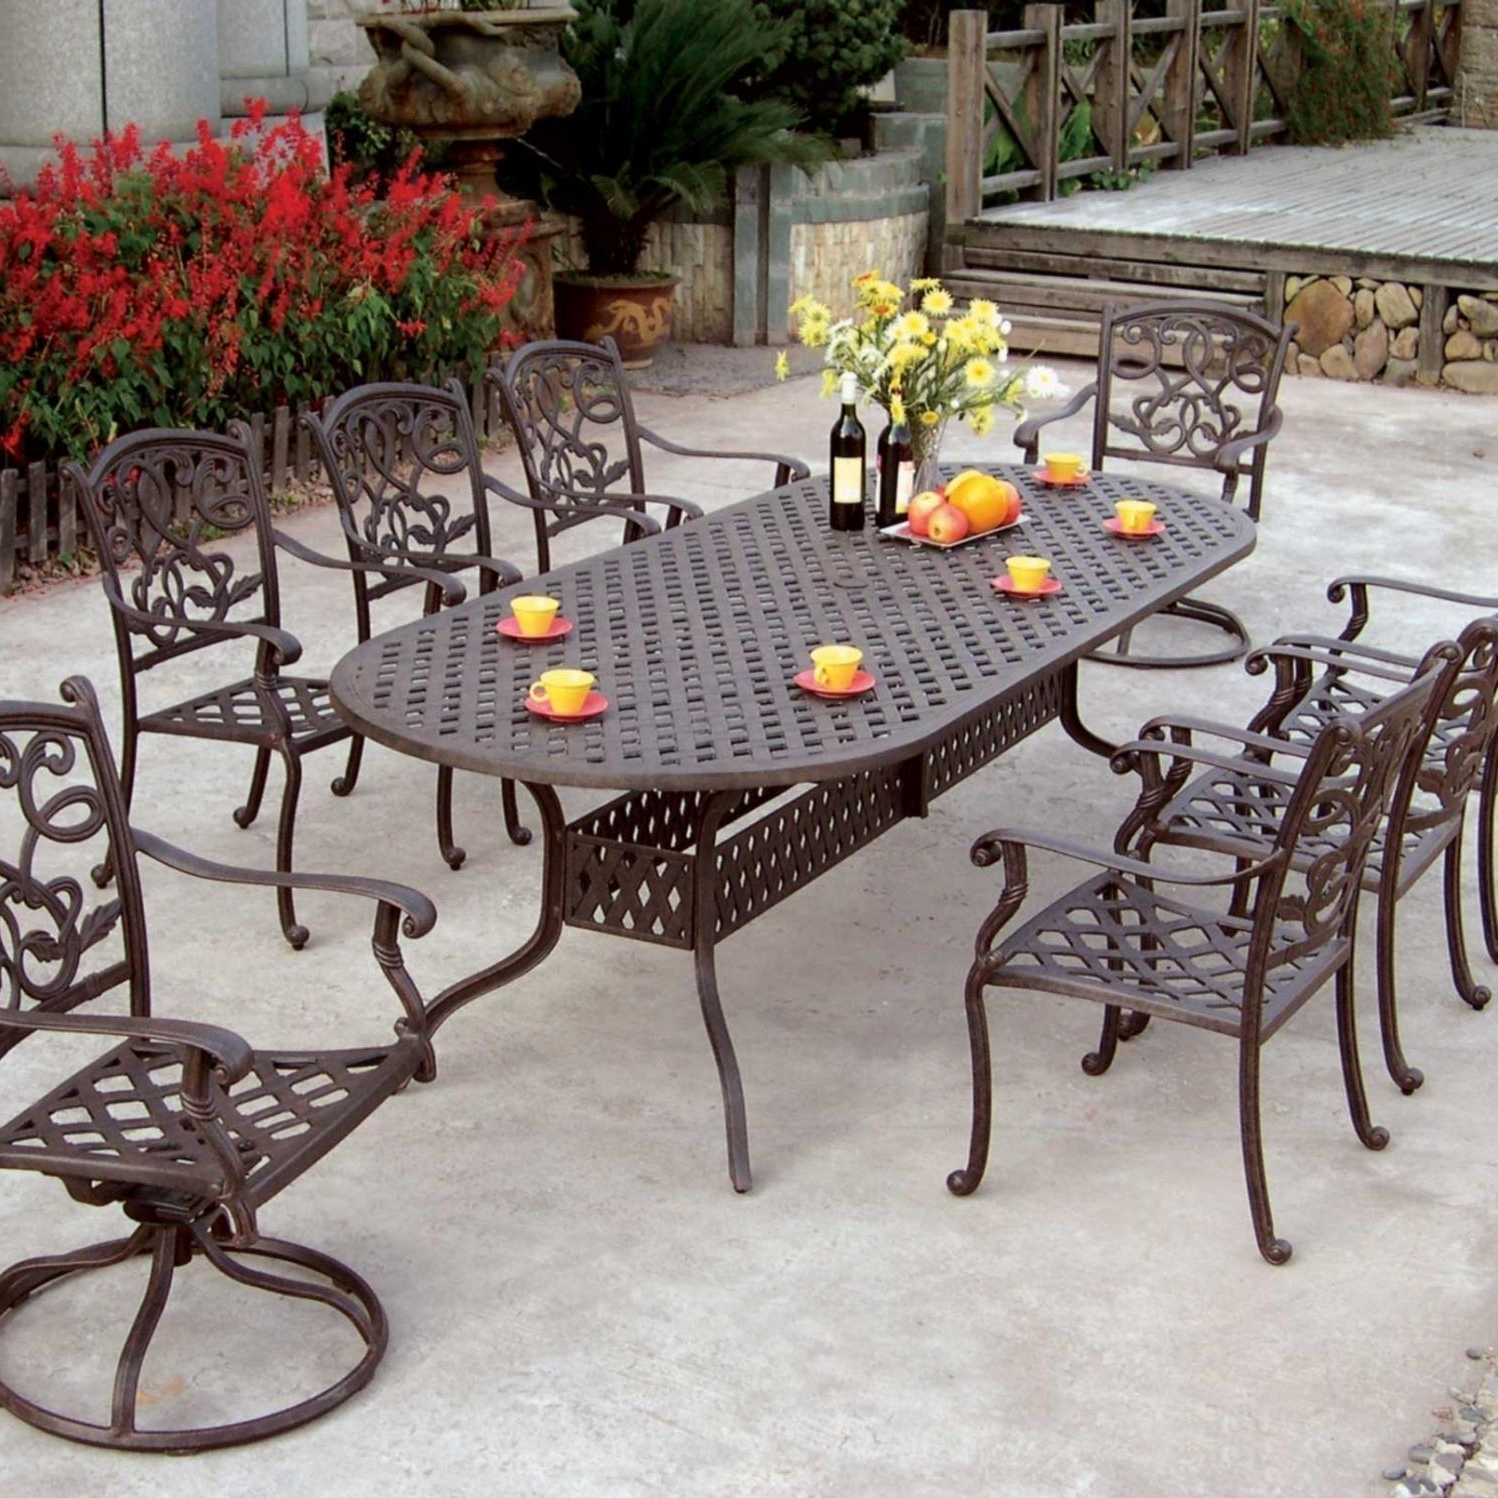 Cast Aluminum Patio Chairs Chairs Exquisite Aluminum Patio Furniture Intended For Latest Cast Aluminum Patio Conversation Sets (View 3 of 20)